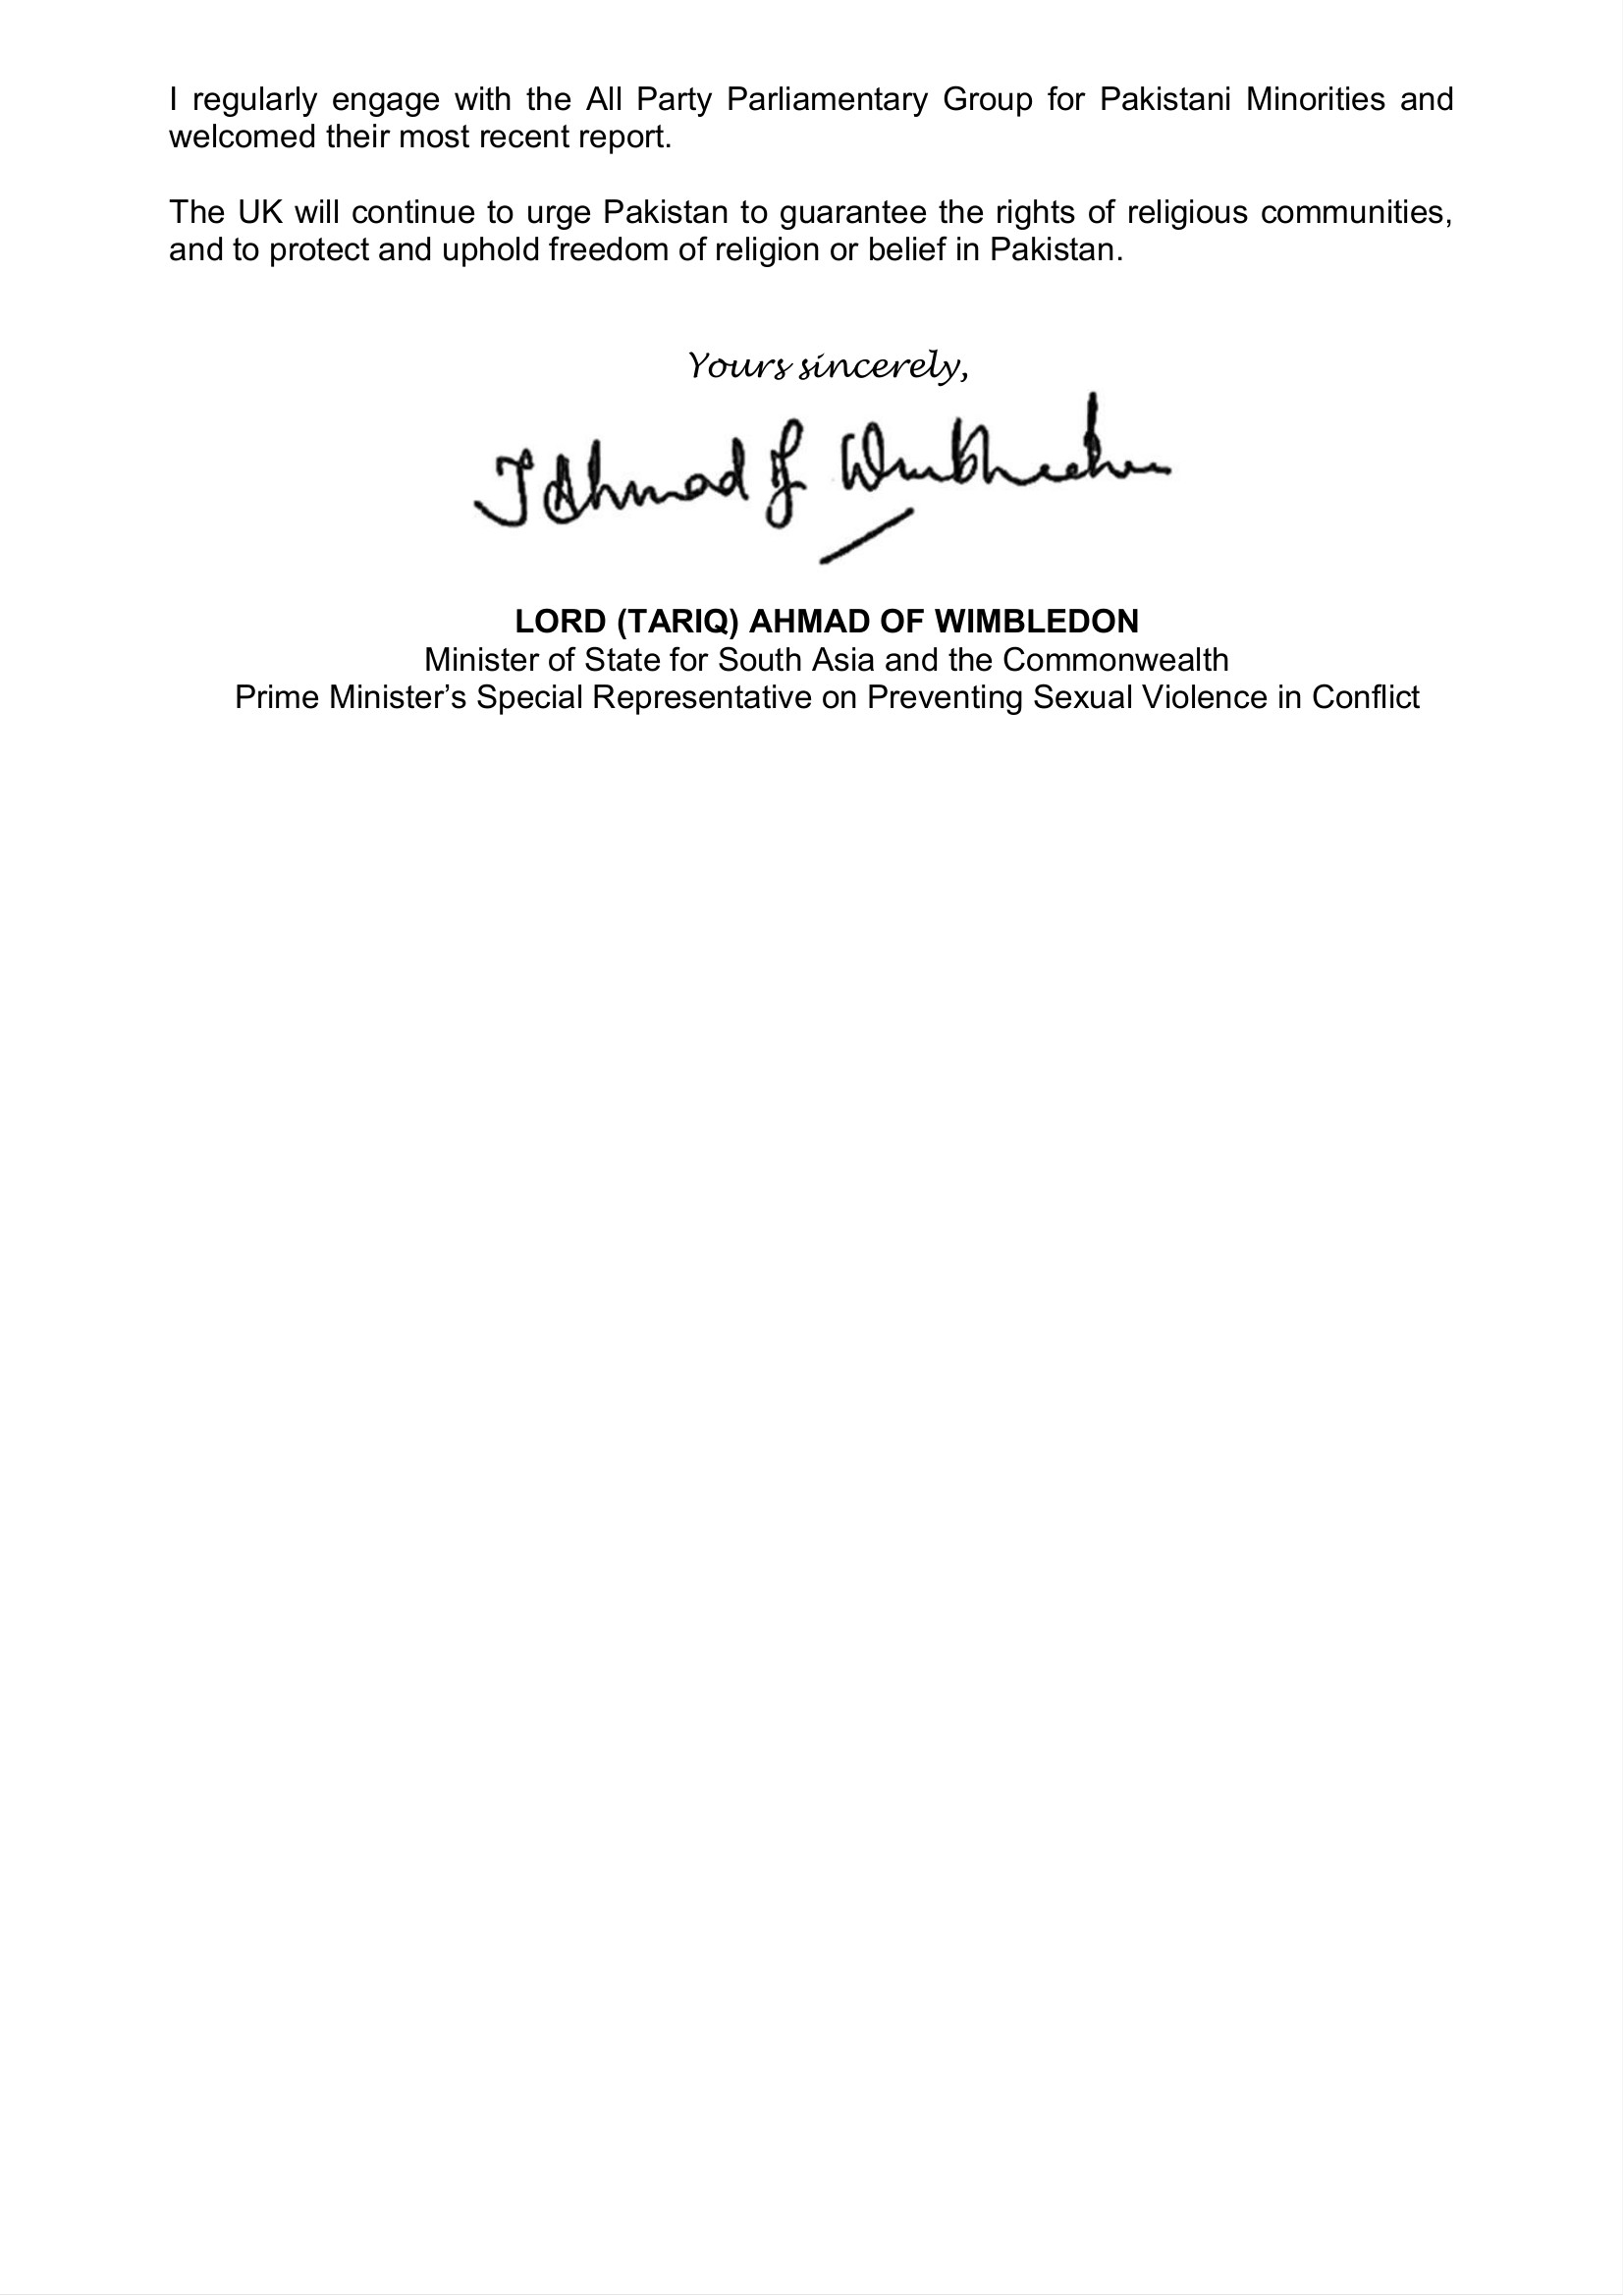 2 Letter from Lord Ahmad of Wimbledon to Trupti Patel 10032021